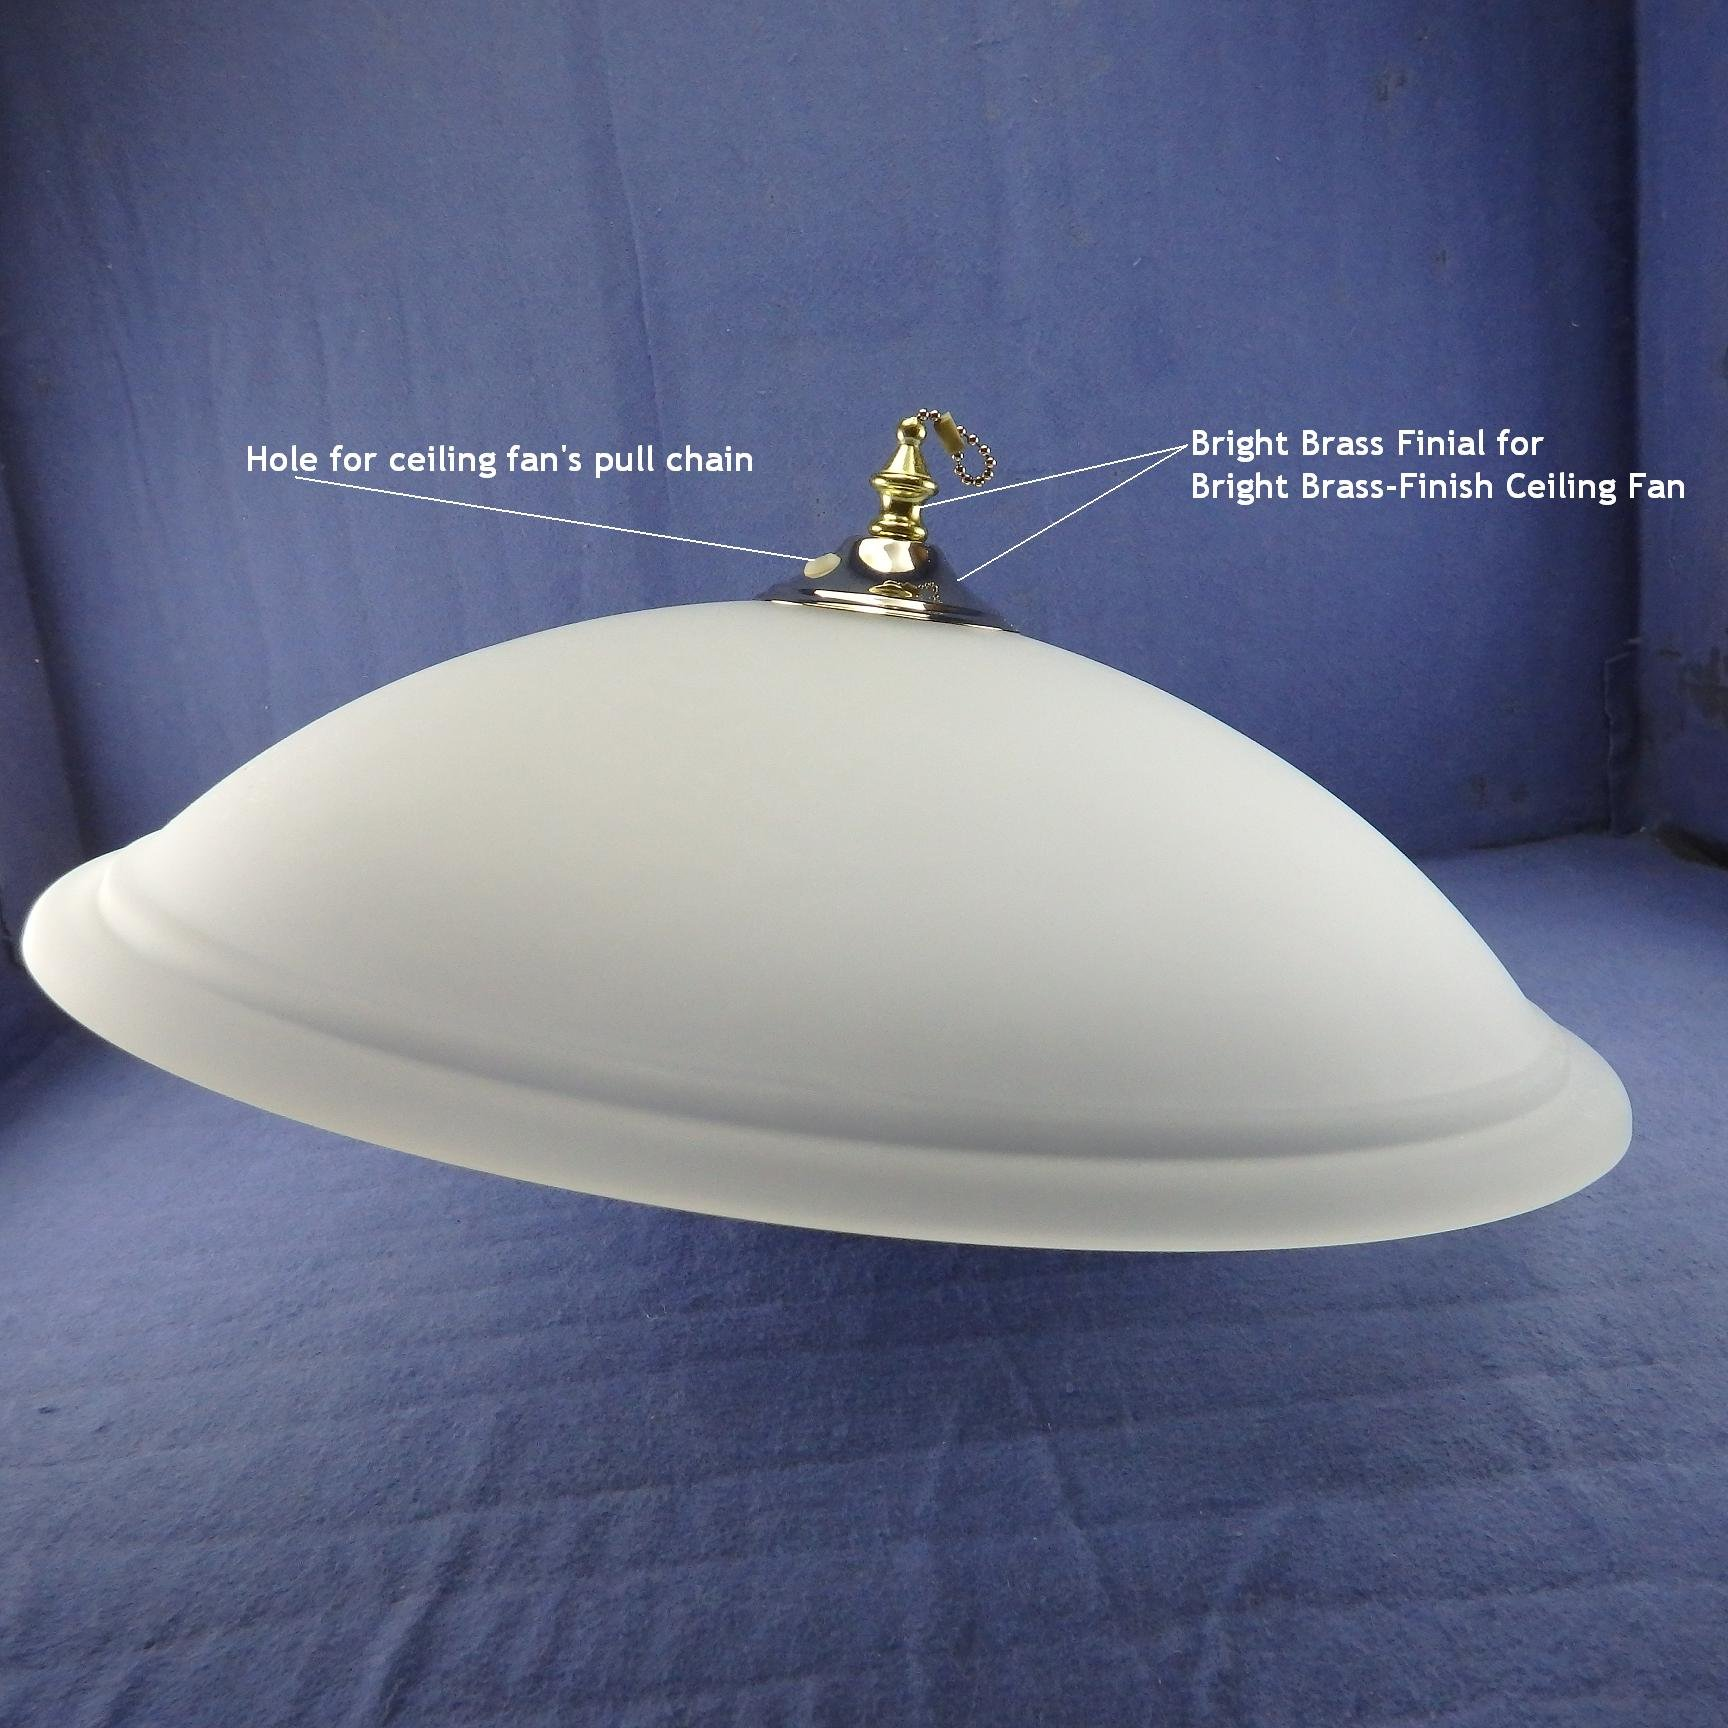 Frosted Glass Bowl w/LED Panel Kit - 7'' Diameter - WARM WHITE (4000K), 4000lumens 17Watts. Complete LED Light KIT for BRIGHT BRASS Ceiling Fan, P/N: SPTL420LMF7-4K+LIGHT KIT#85173-BBR by SOLARA-USA